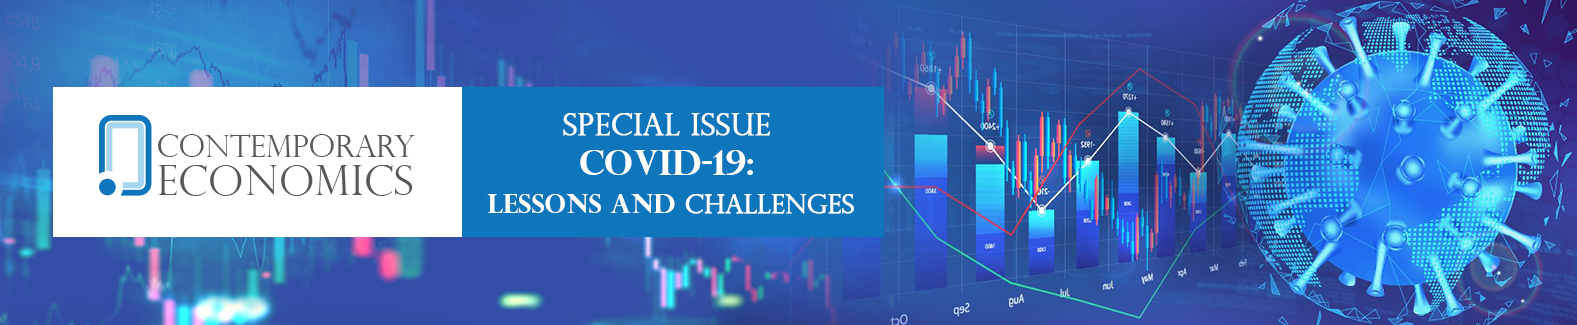 CE Special Issue - COVID-19